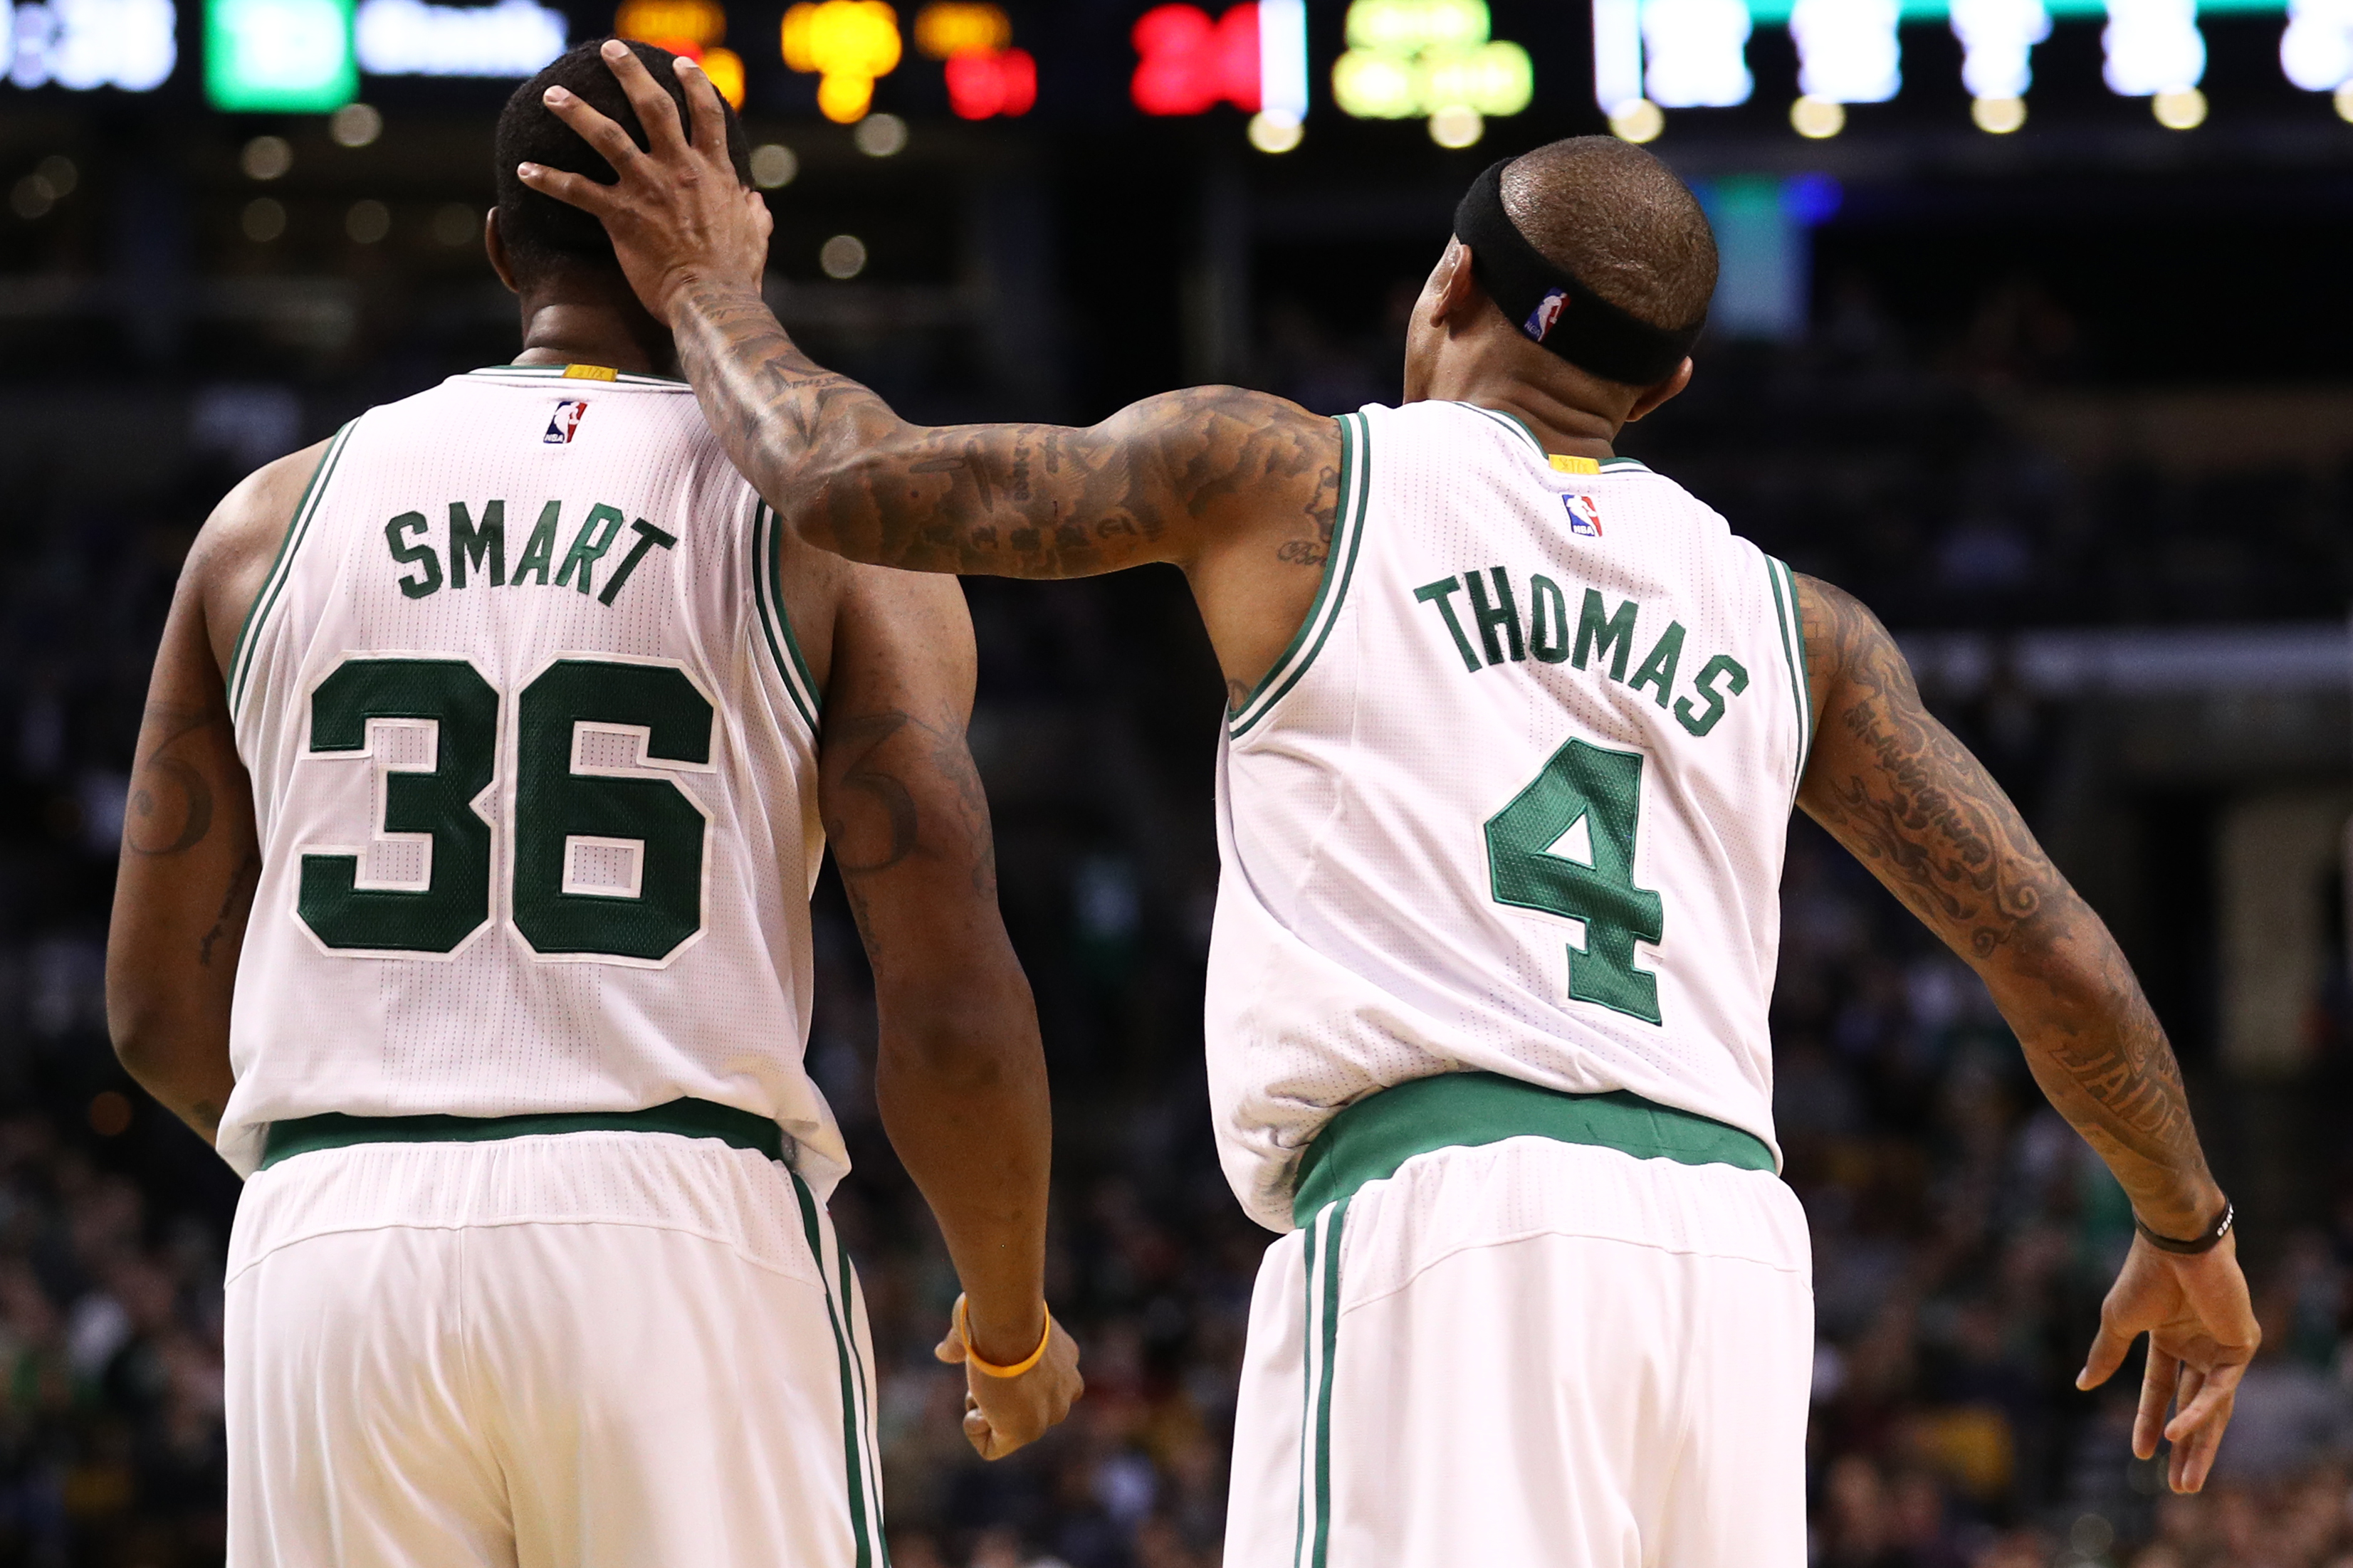 660342386-milwaukee-bucks-v-boston-celtics.jpg